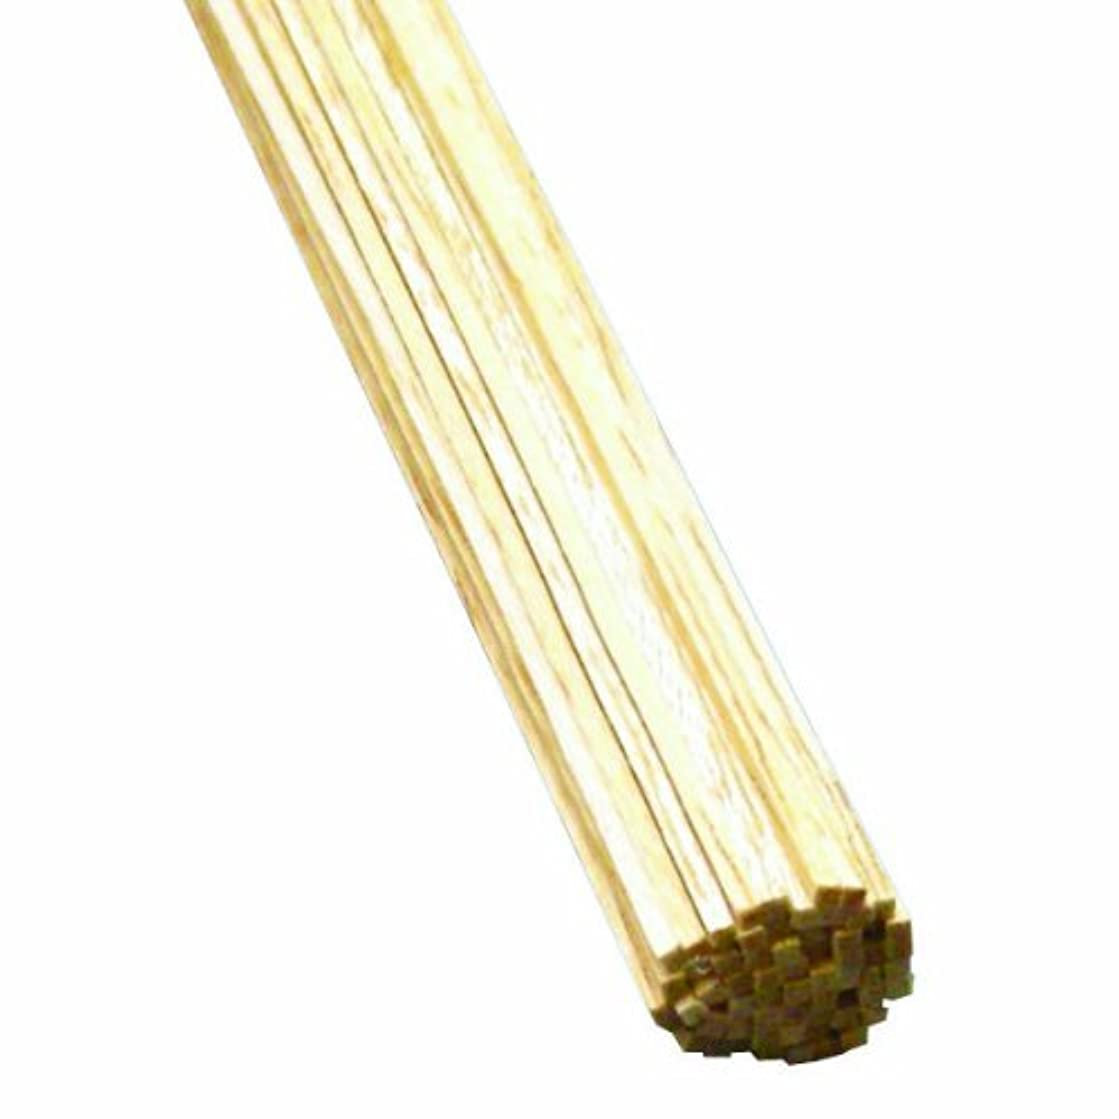 Midwest Products 6022 Micro-Cut Quality Balsa 36 Inch Strip Bundle, 0.0625 x 0.0625 Inches